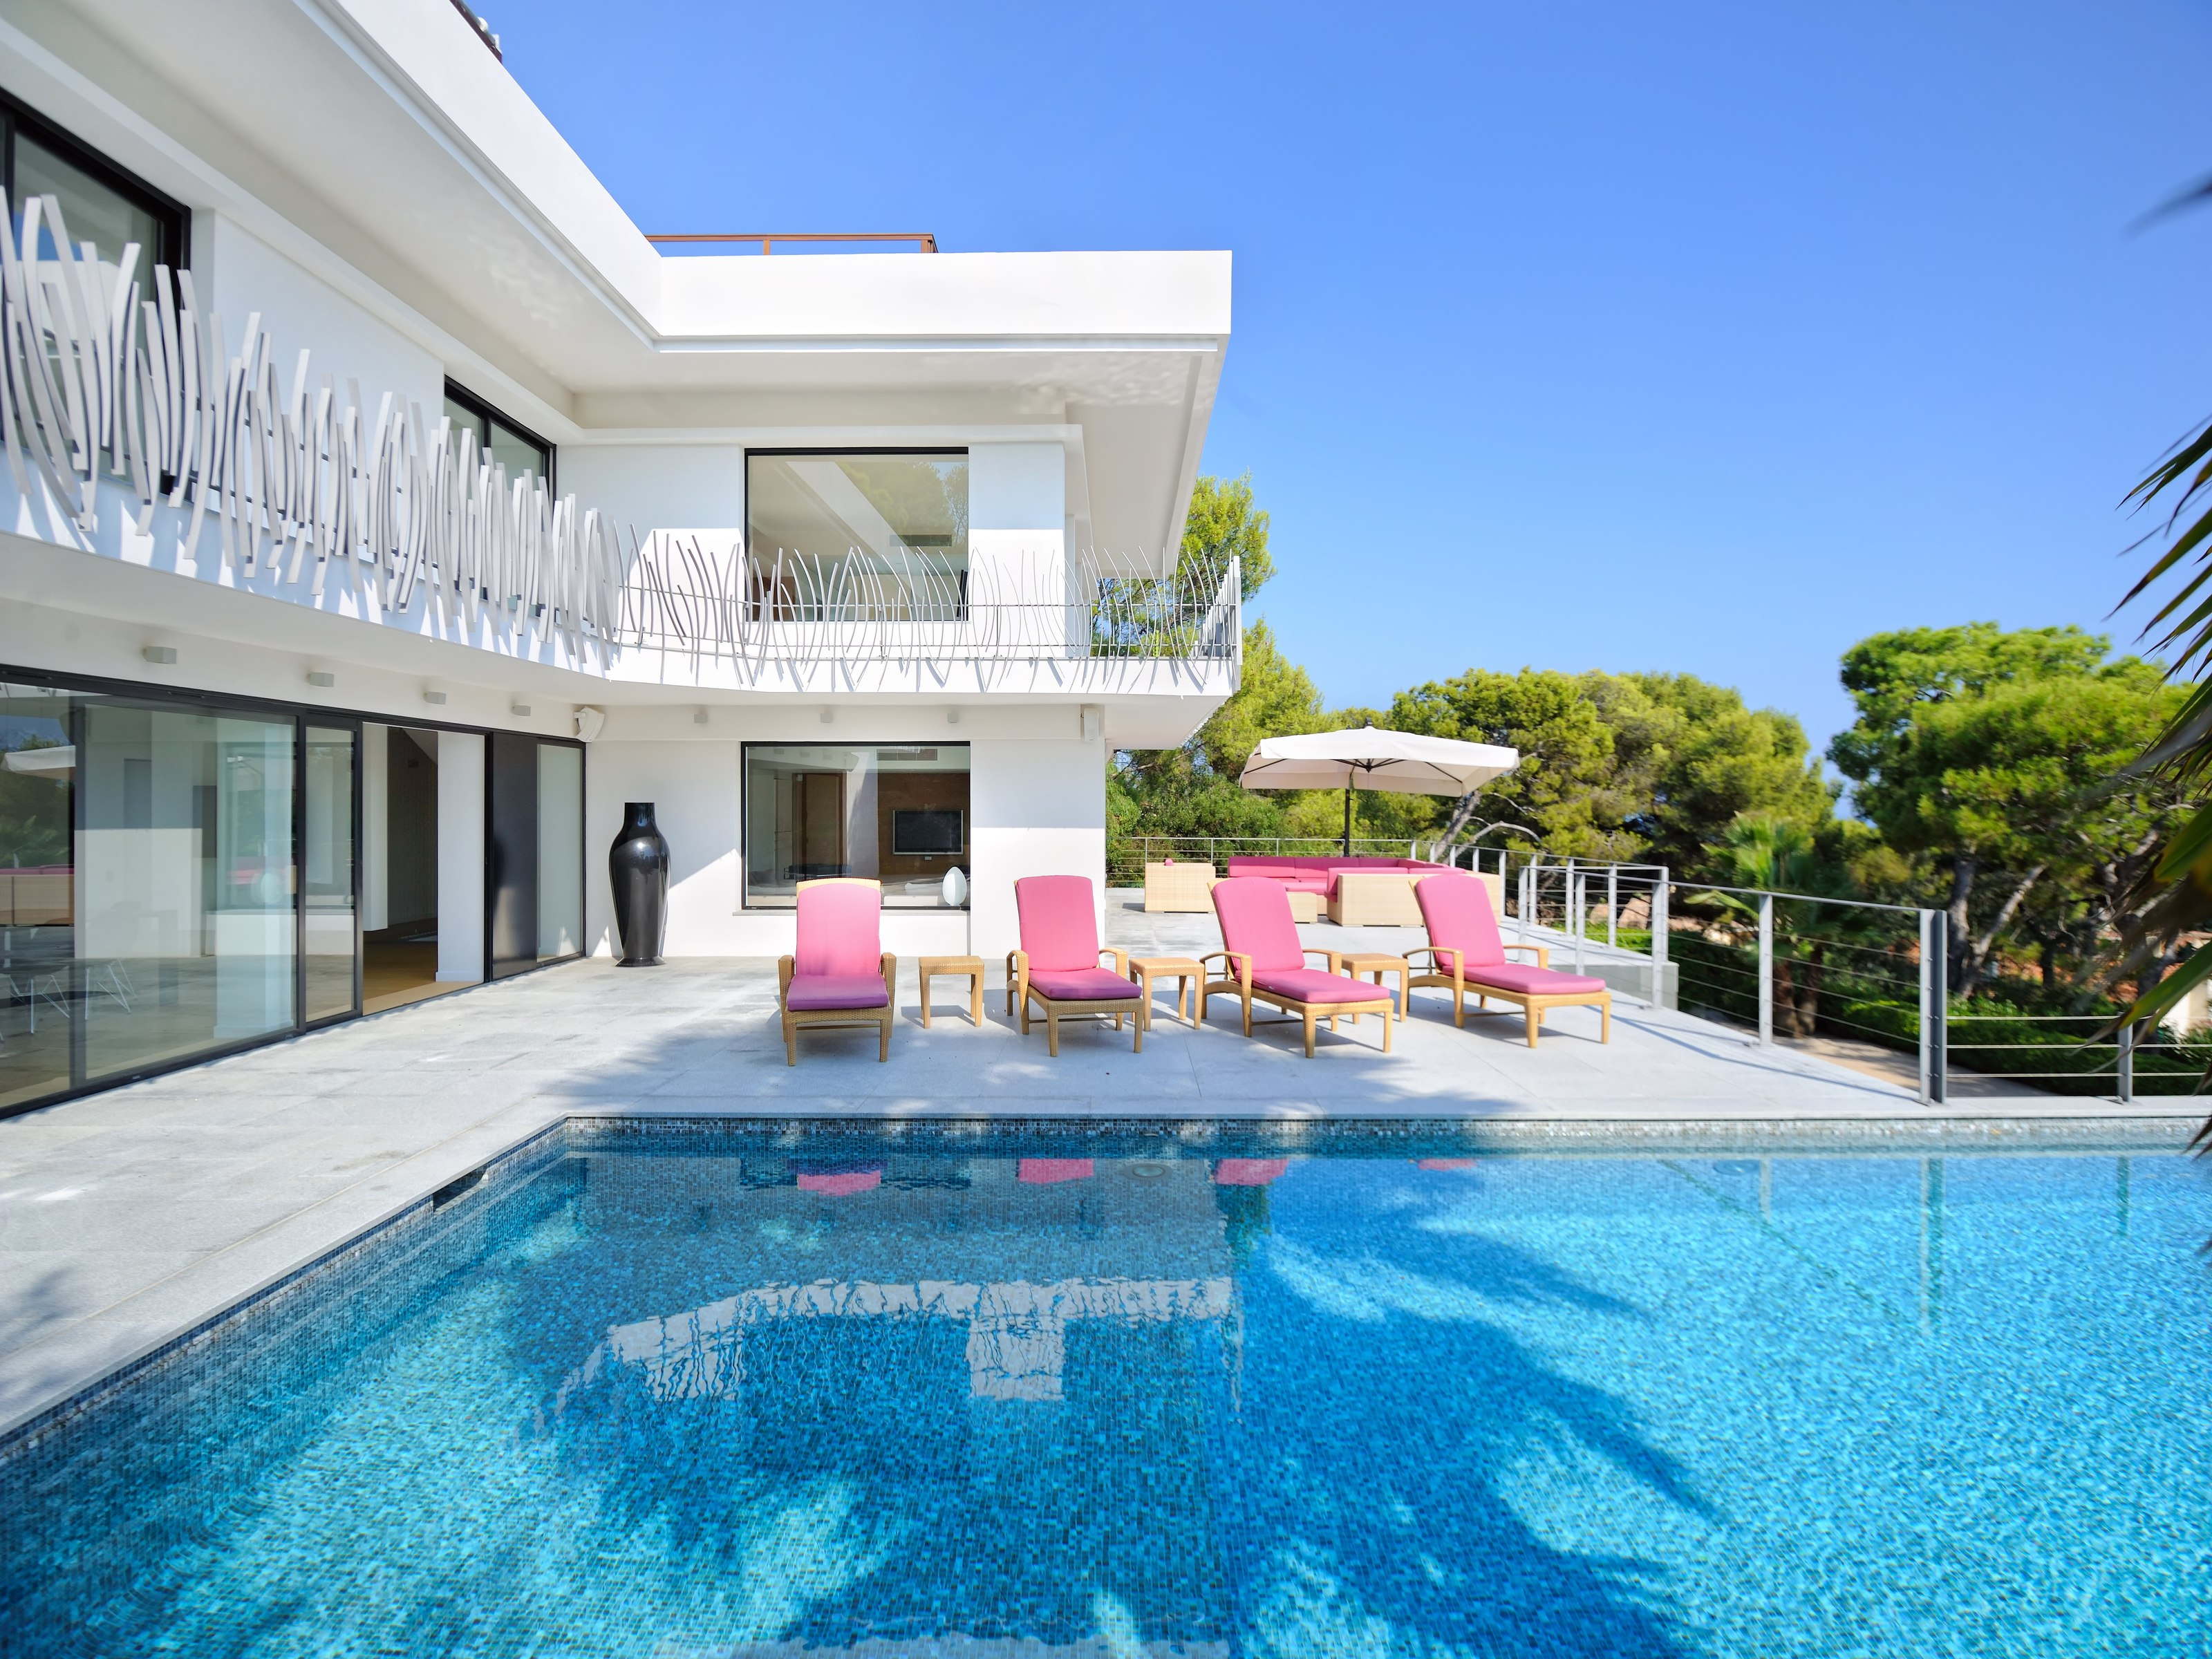 Property For Sale at Exclusivité - Villa contemporaine à vendre Cap Ferrat - Vue mer panoramique